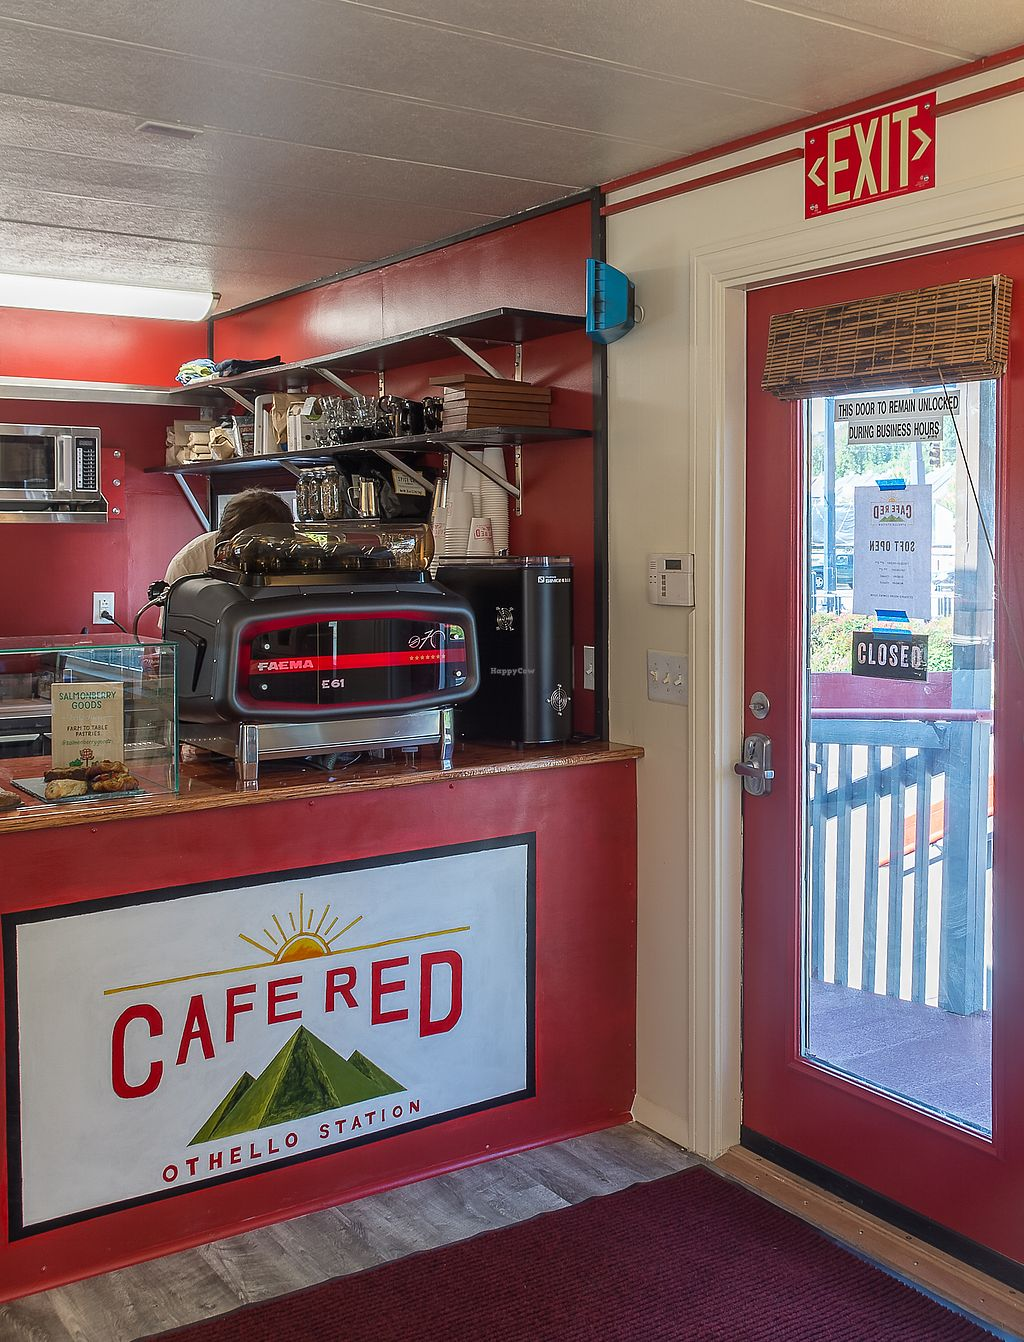 "Photo of Cafe Red  by <a href=""/members/profile/haley_paige91"">haley_paige91</a> <br/>Front counter <br/> September 20, 2017  - <a href='/contact/abuse/image/101350/306548'>Report</a>"